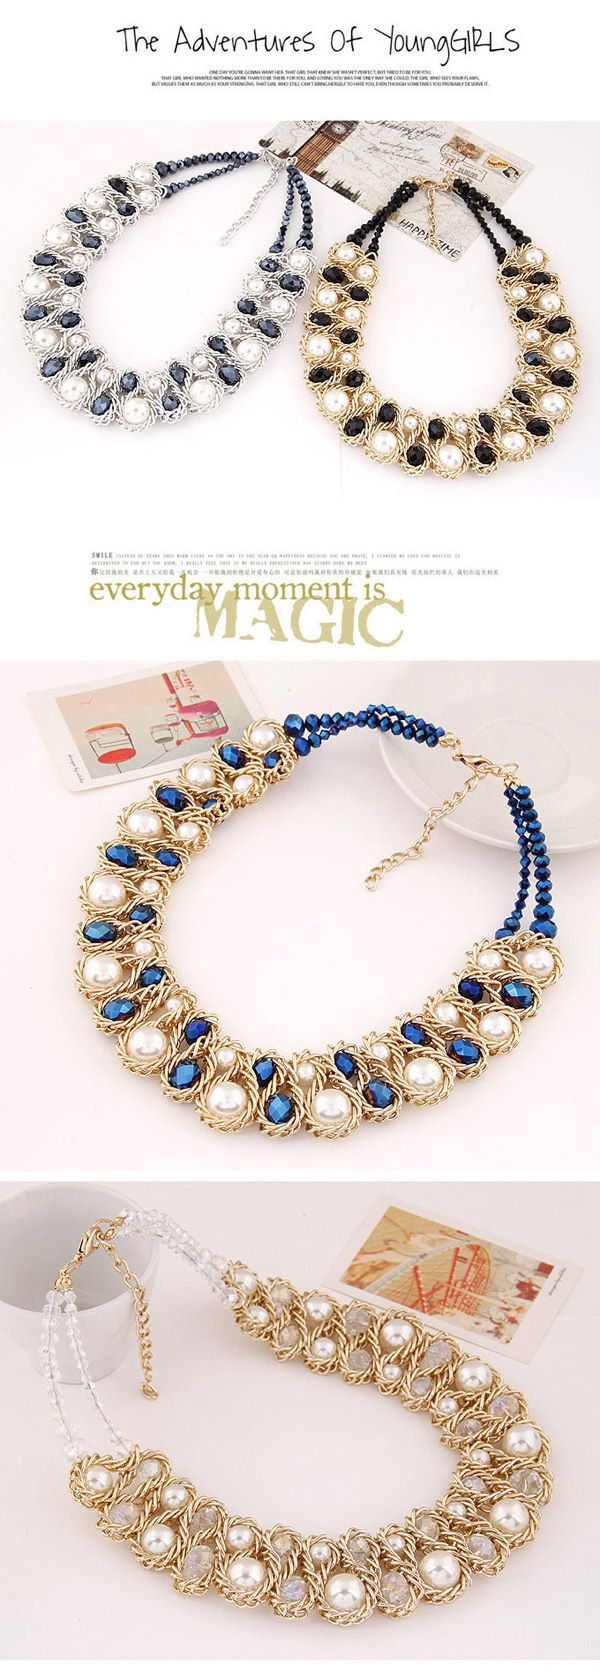 Luxurious White & Blue Beads Decorated Weave Design Alloy Bib Necklaces,Bib Necklaces